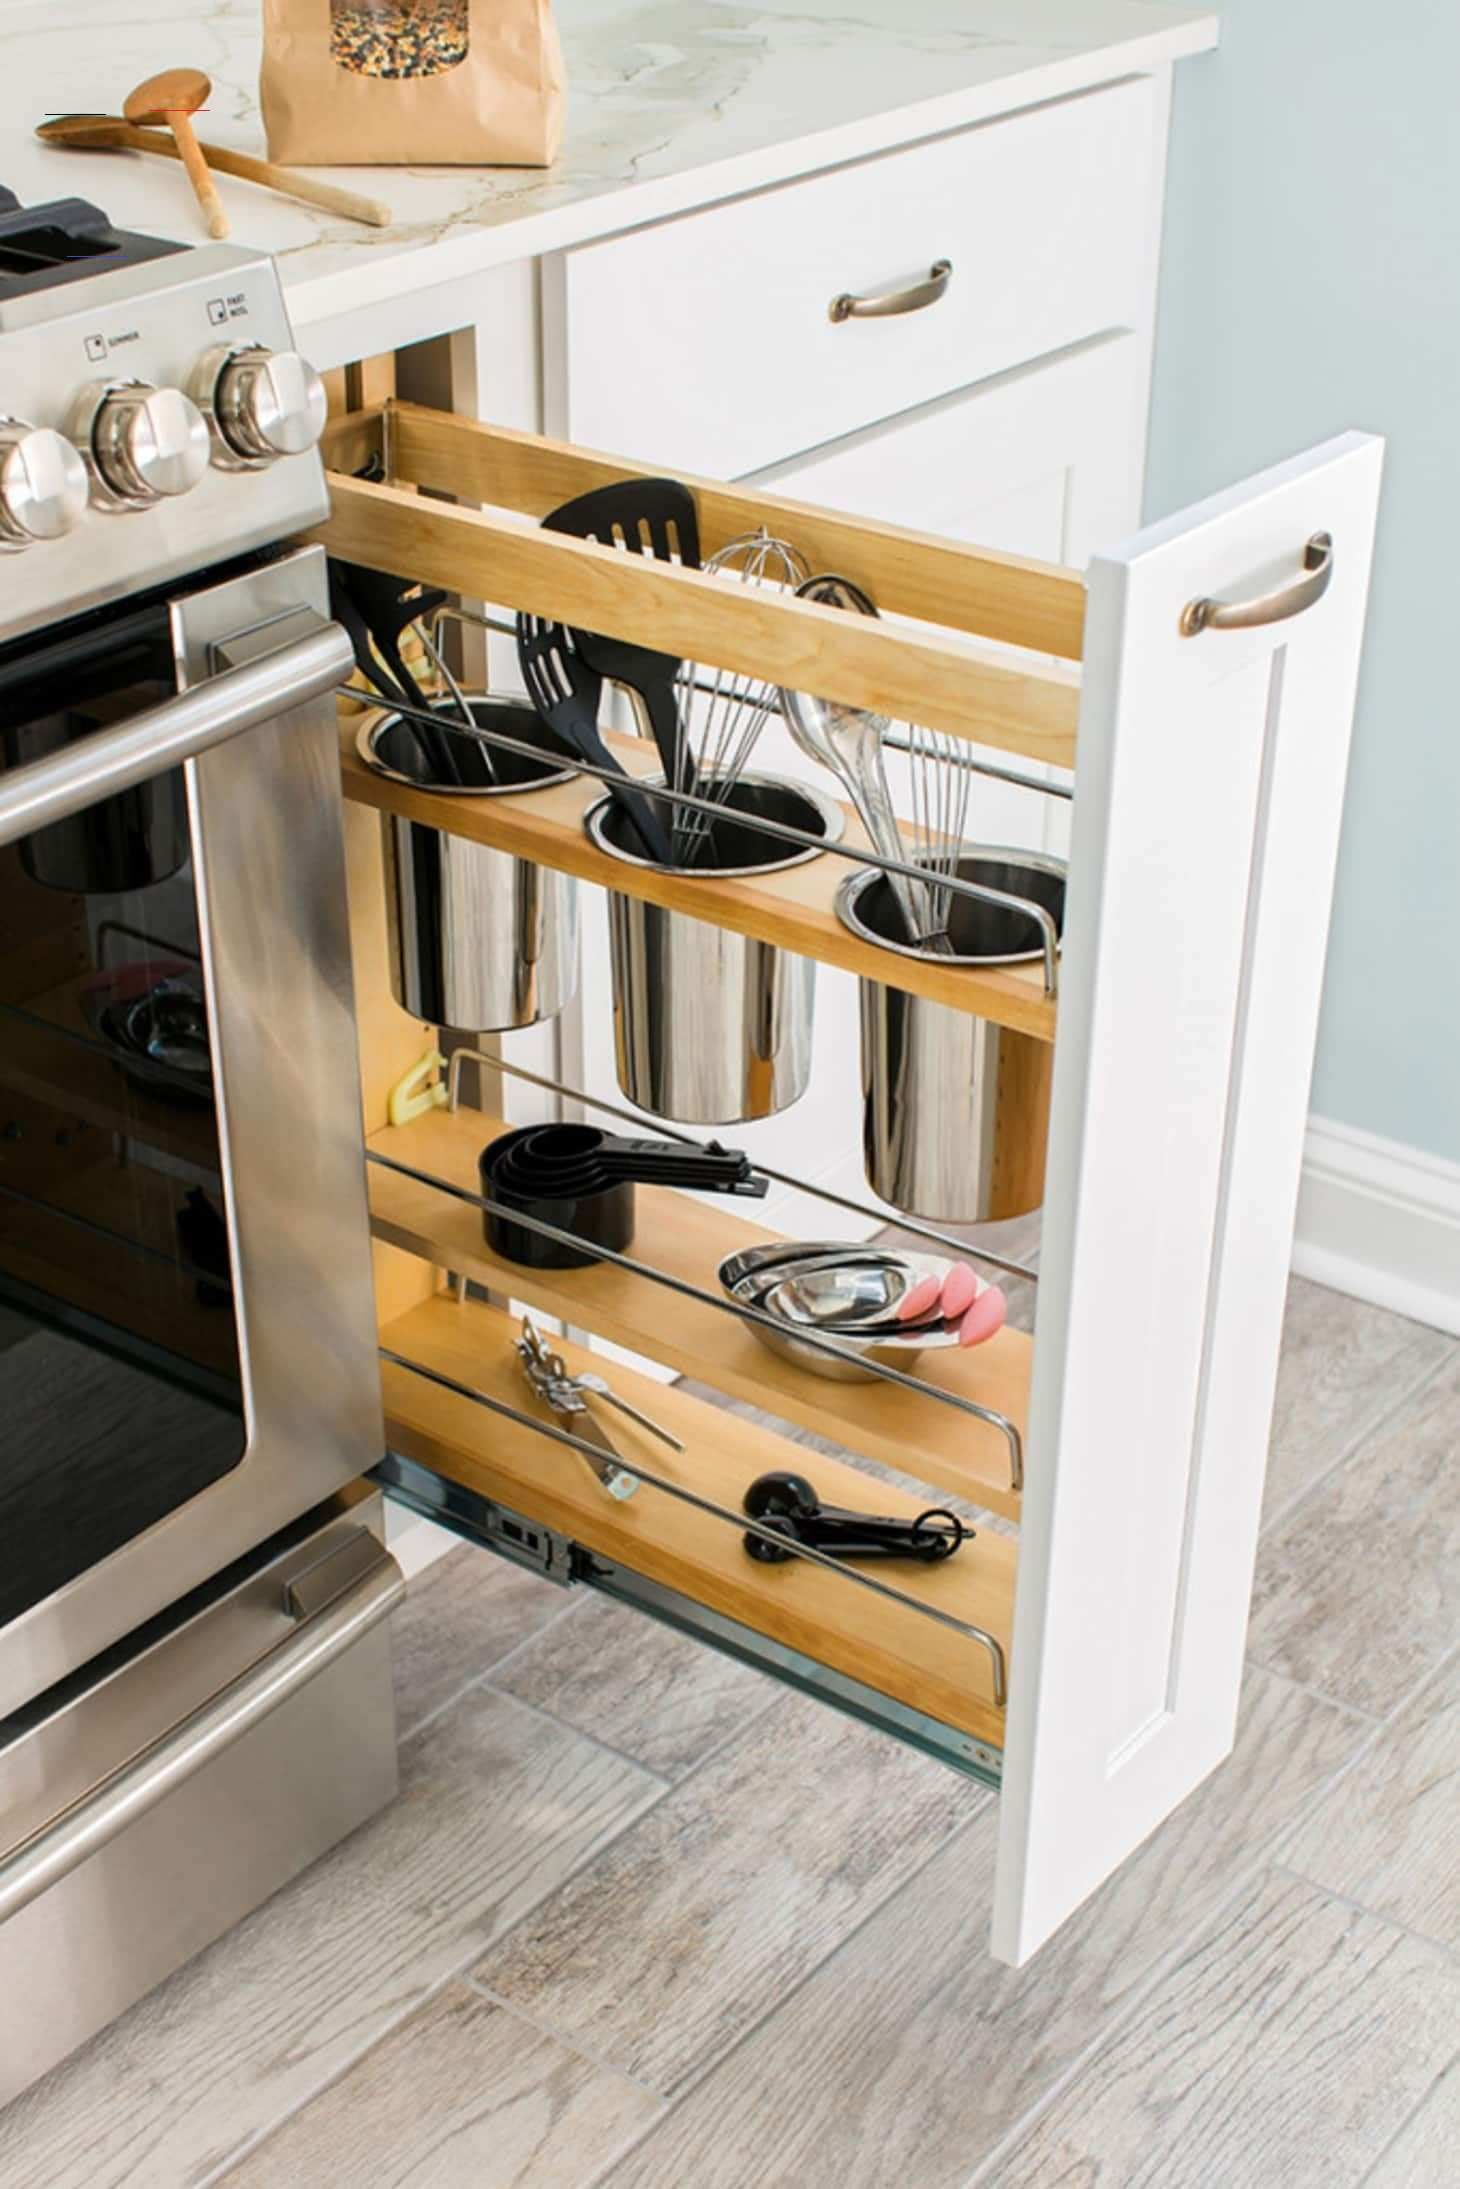 Smart Storage Totally Genius Ways To Customize Kitchen Cabinets Smartstorage There S No In 2020 Small Kitchen Storage Kitchen Storage Space Kitchen Remodel Small